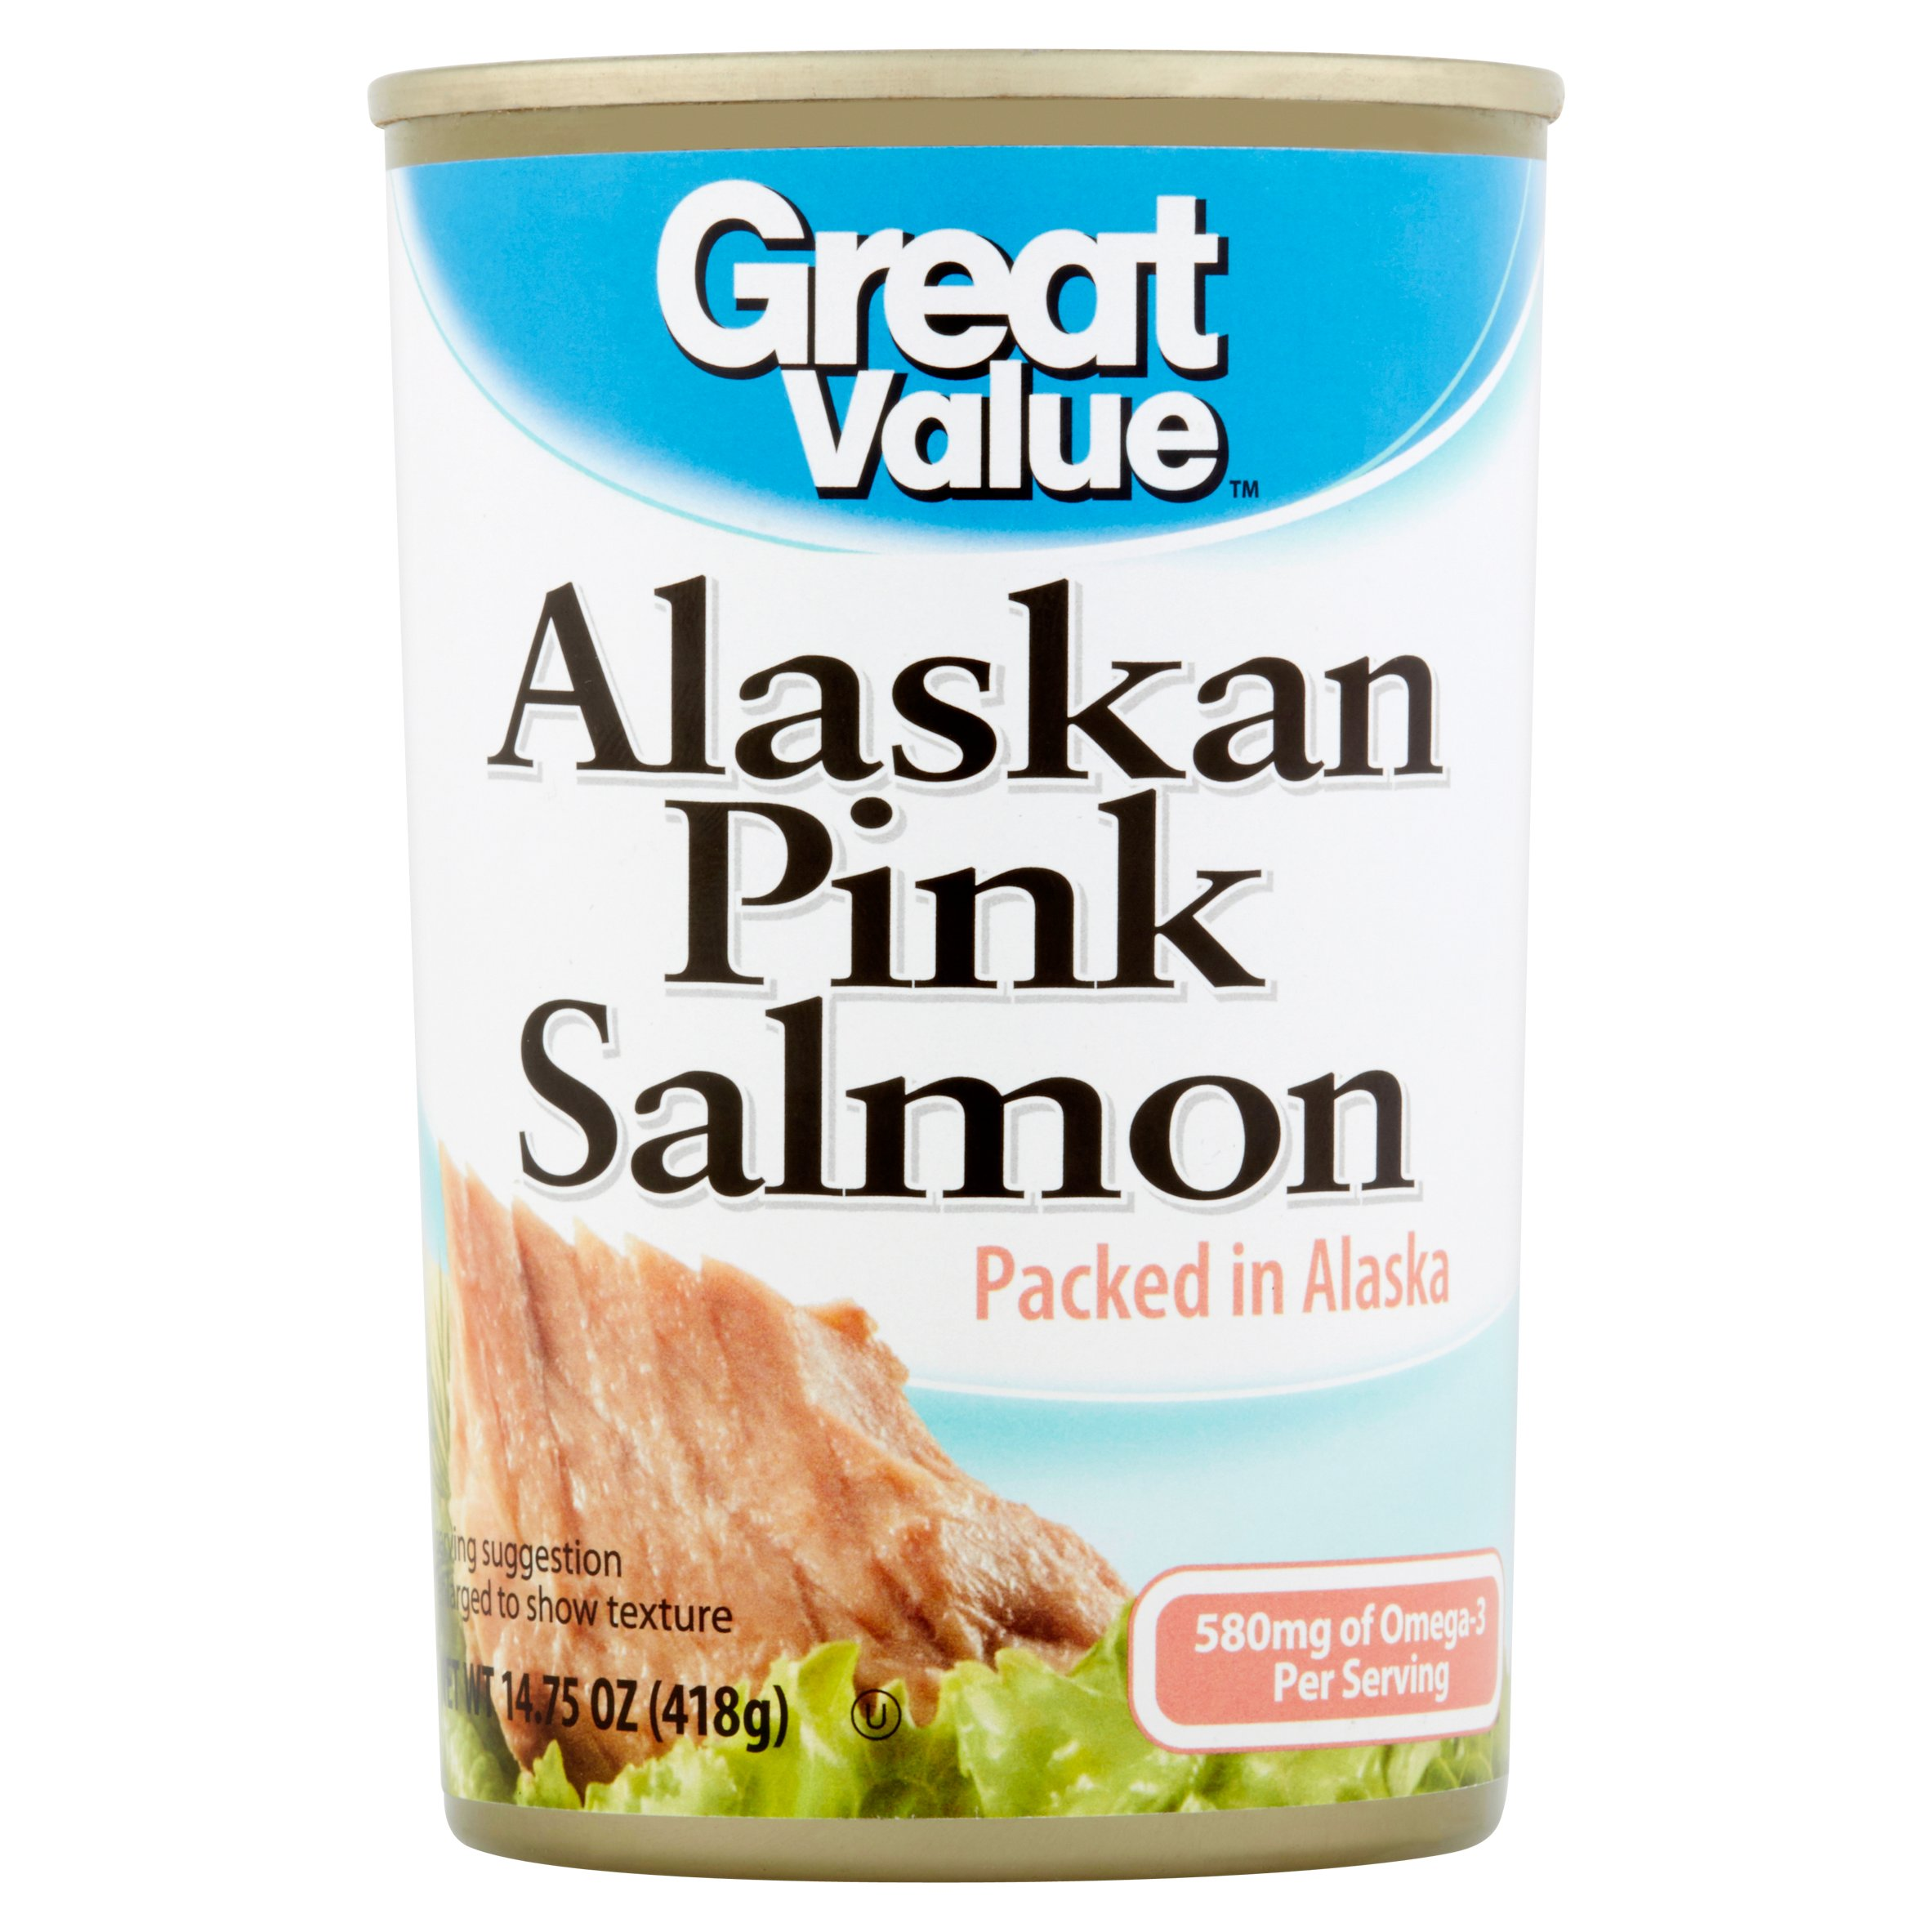 Great Value: Alaskan Pink Salmon, 14.75 Oz by Wal-Mart Stores, Inc.